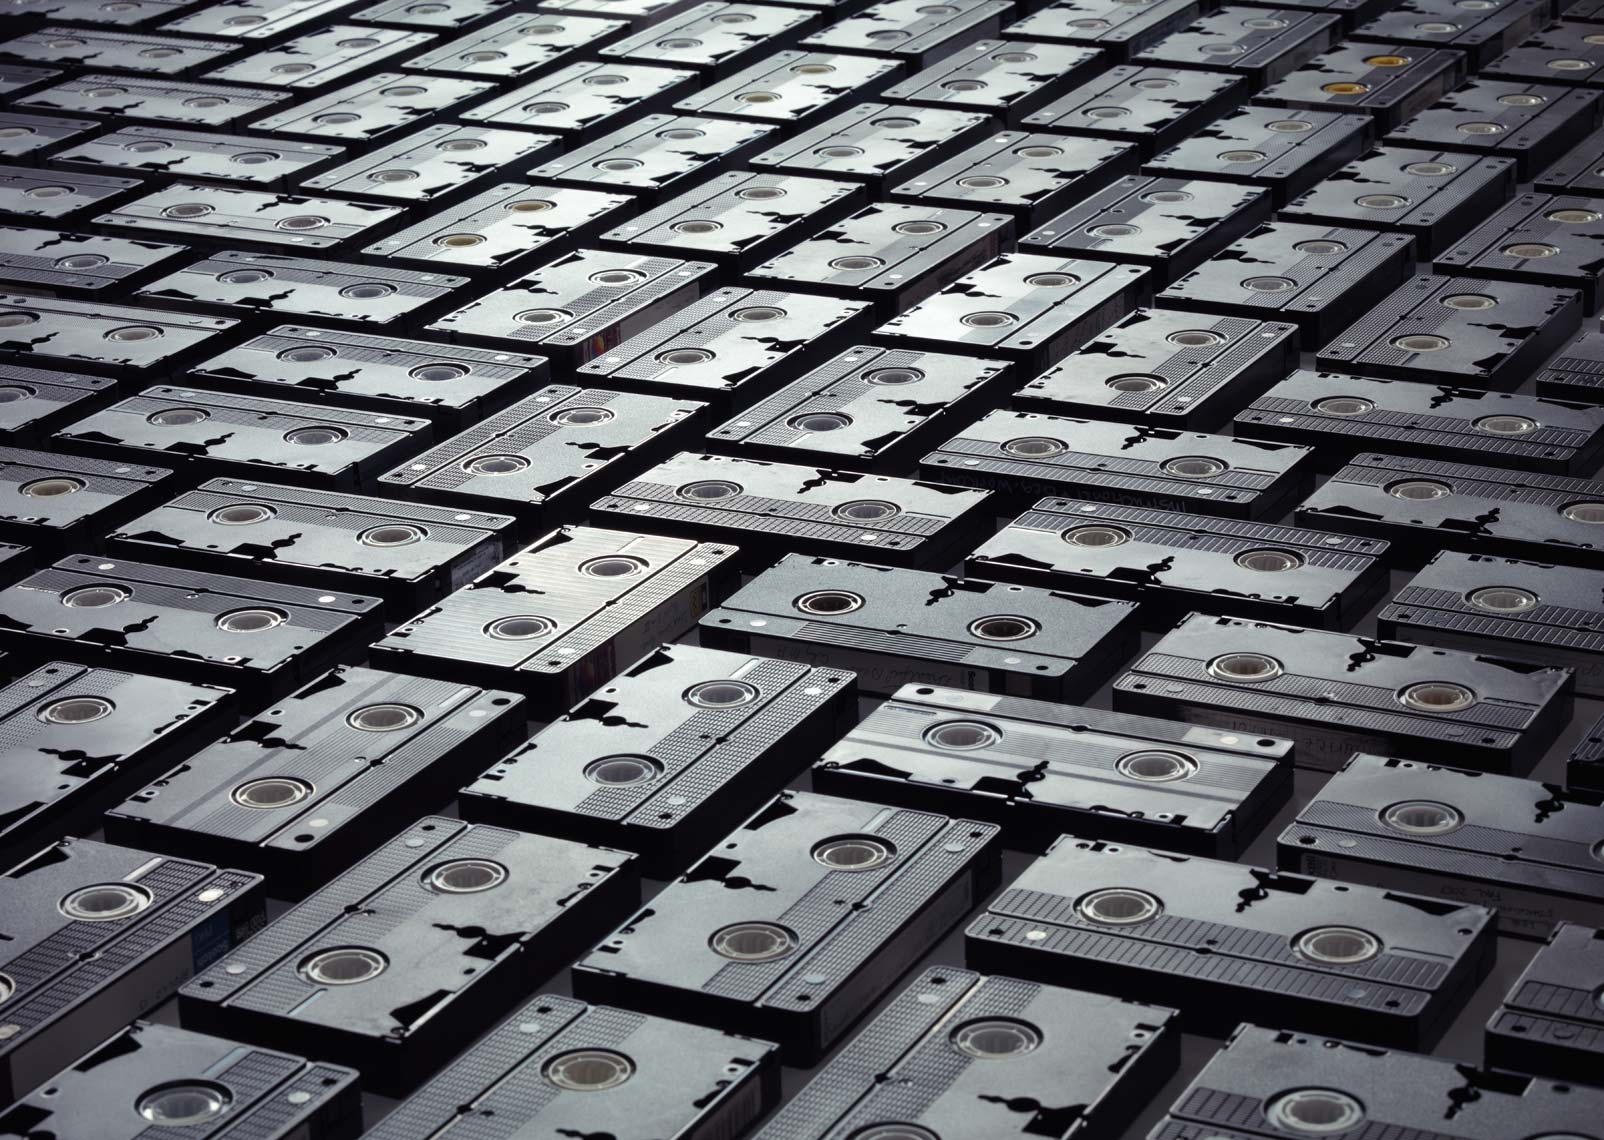 Graphic Videotapes